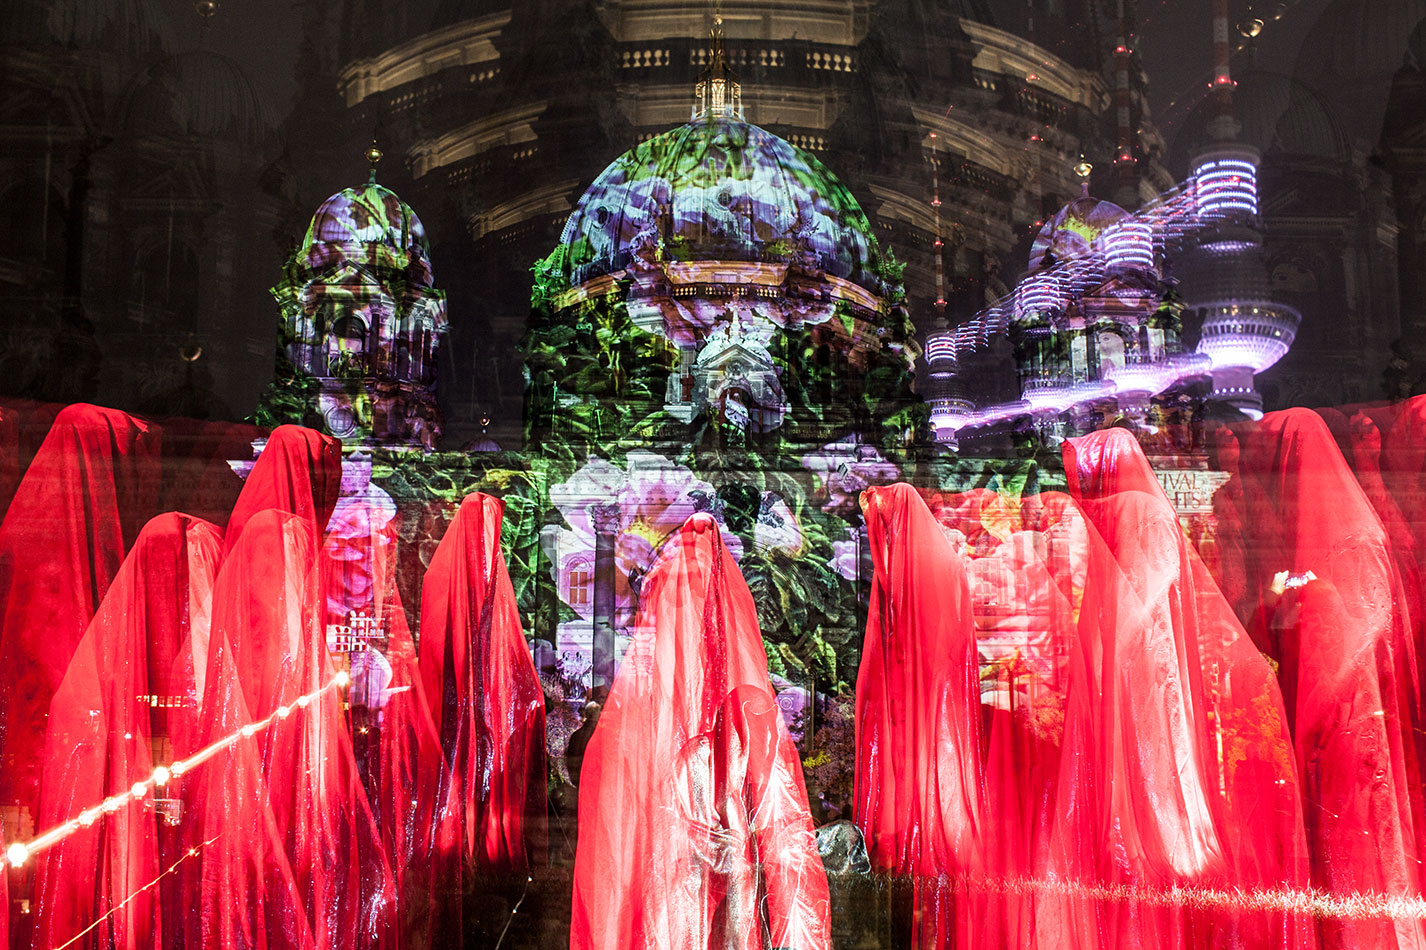 festival-of-lights-old-museum-cathedral-berlin-light-art-show-exhibition-lumina-guardians-of-time-manfred-kili-kielnhofer-contemporary-arts-design-sculpture-3048